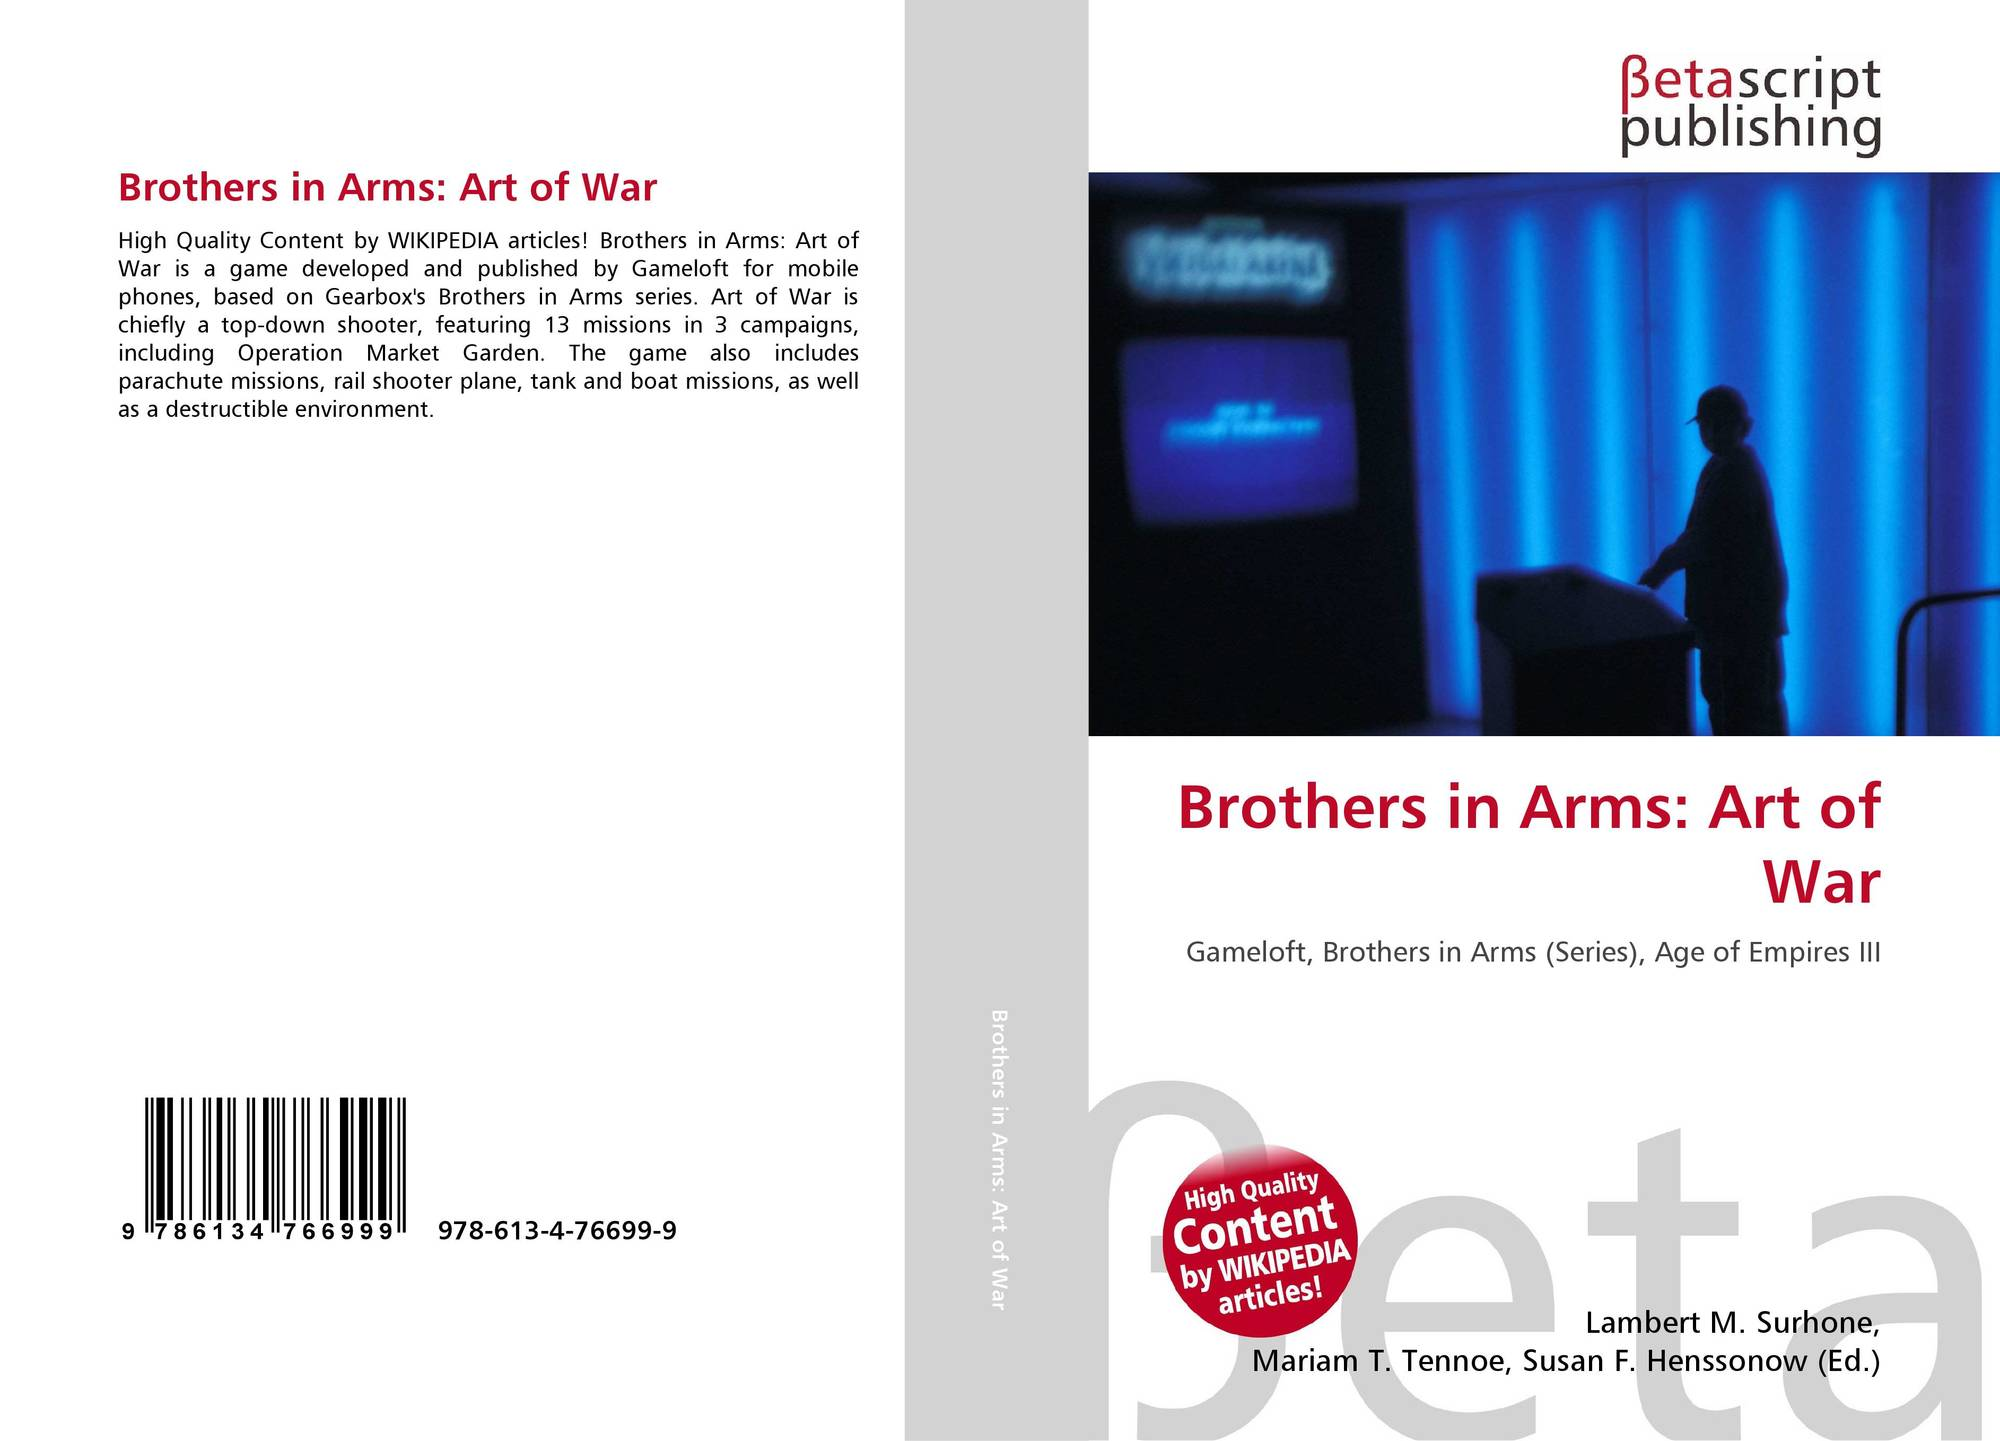 Brothers in Arms: Art of War, 978-613-4-76699-9, 6134766992